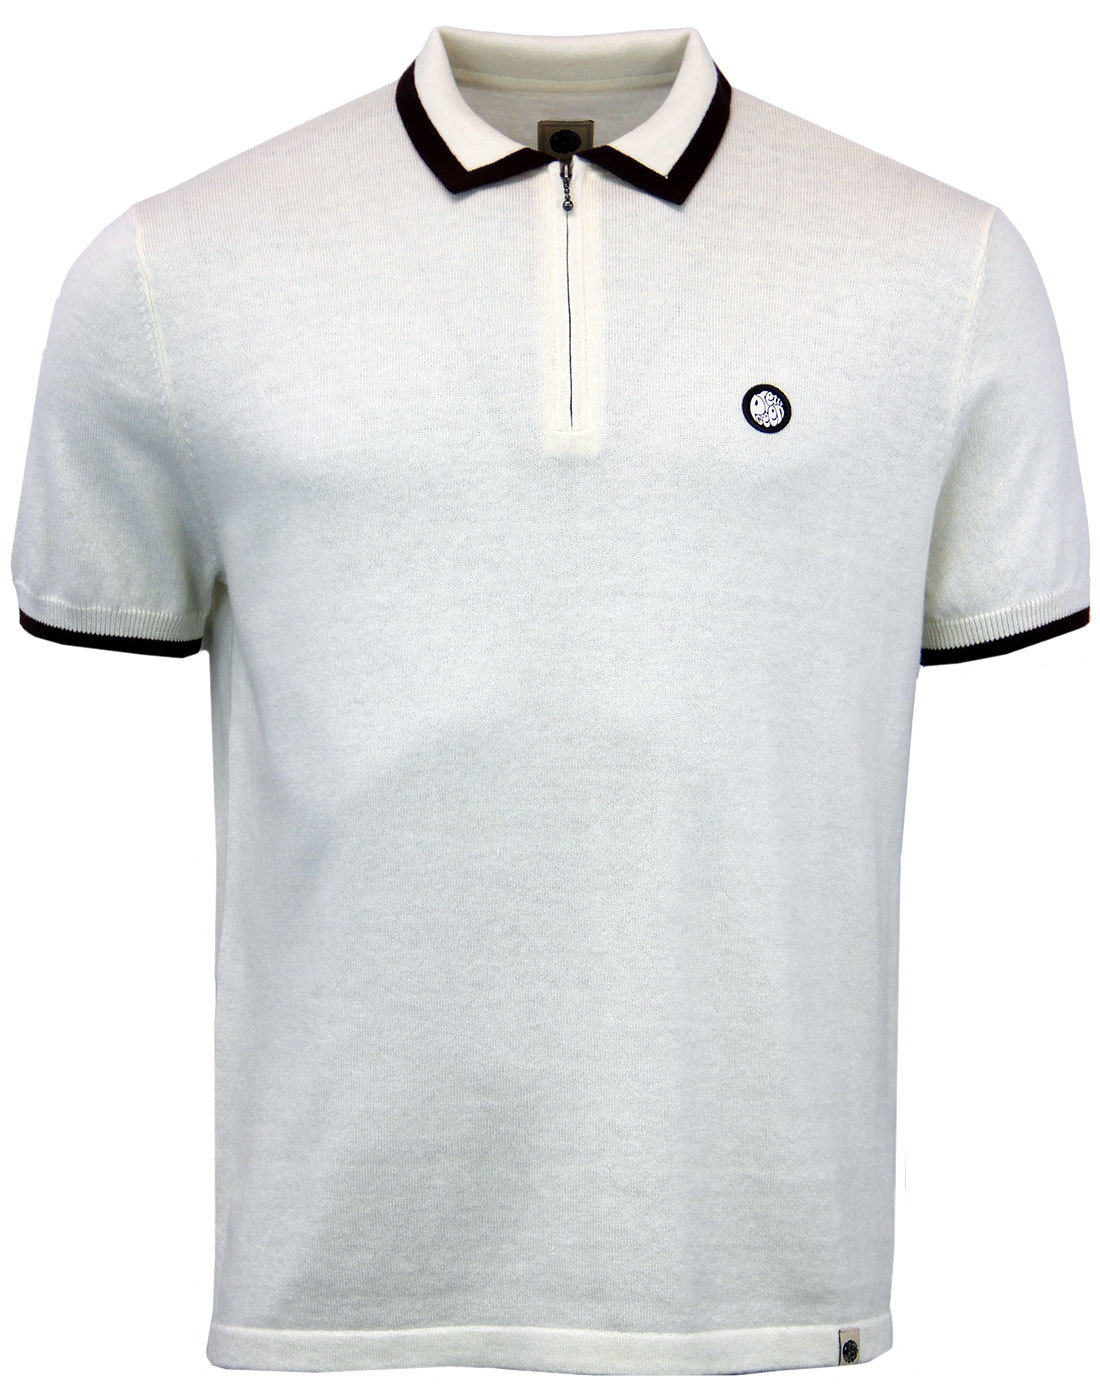 Lowry PRETTY GREEN 1960s Mod Tipped Knit Zip Polo